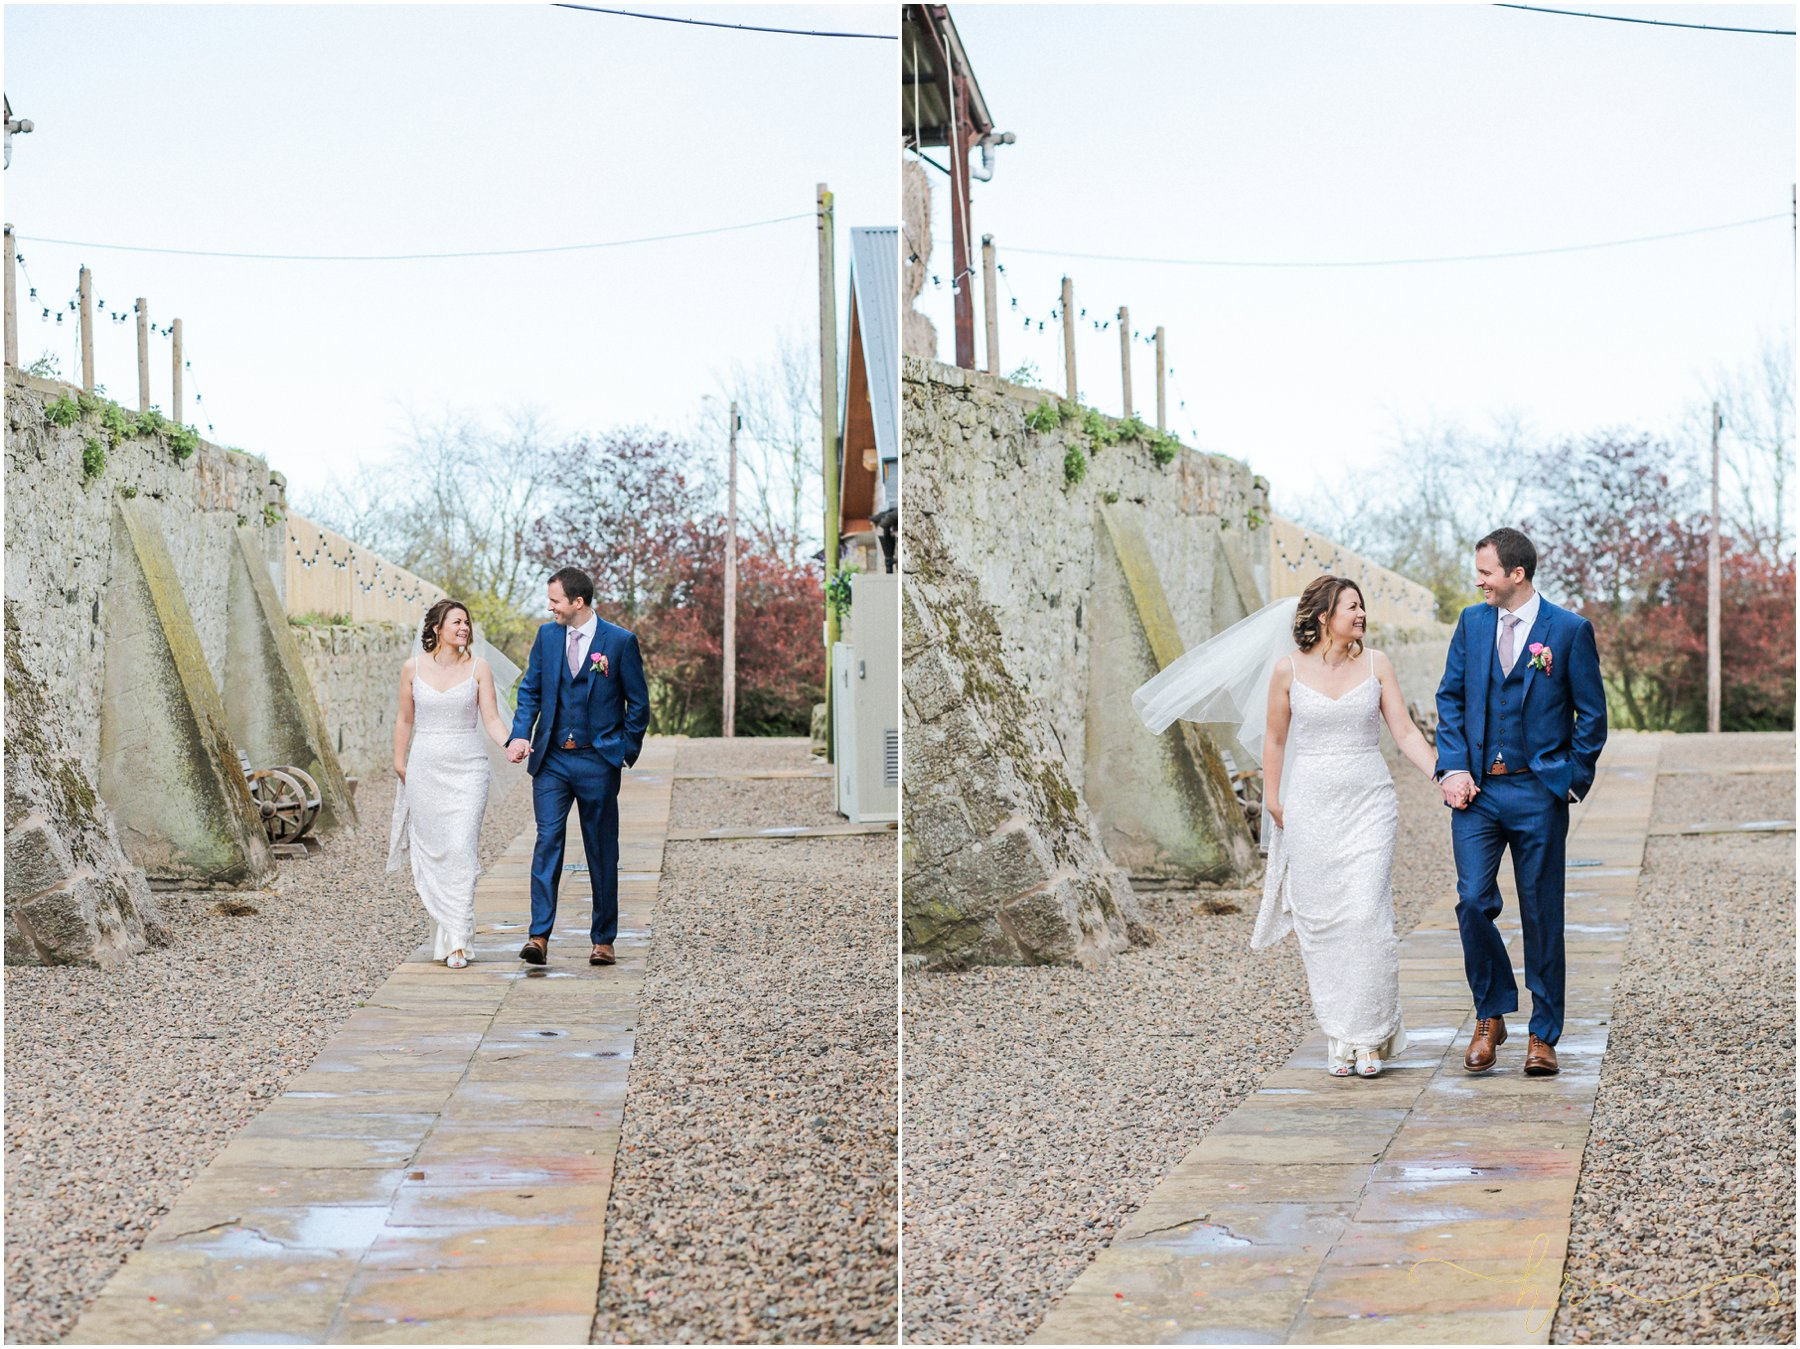 Doxford-Barn-Wedding-Photography_0265